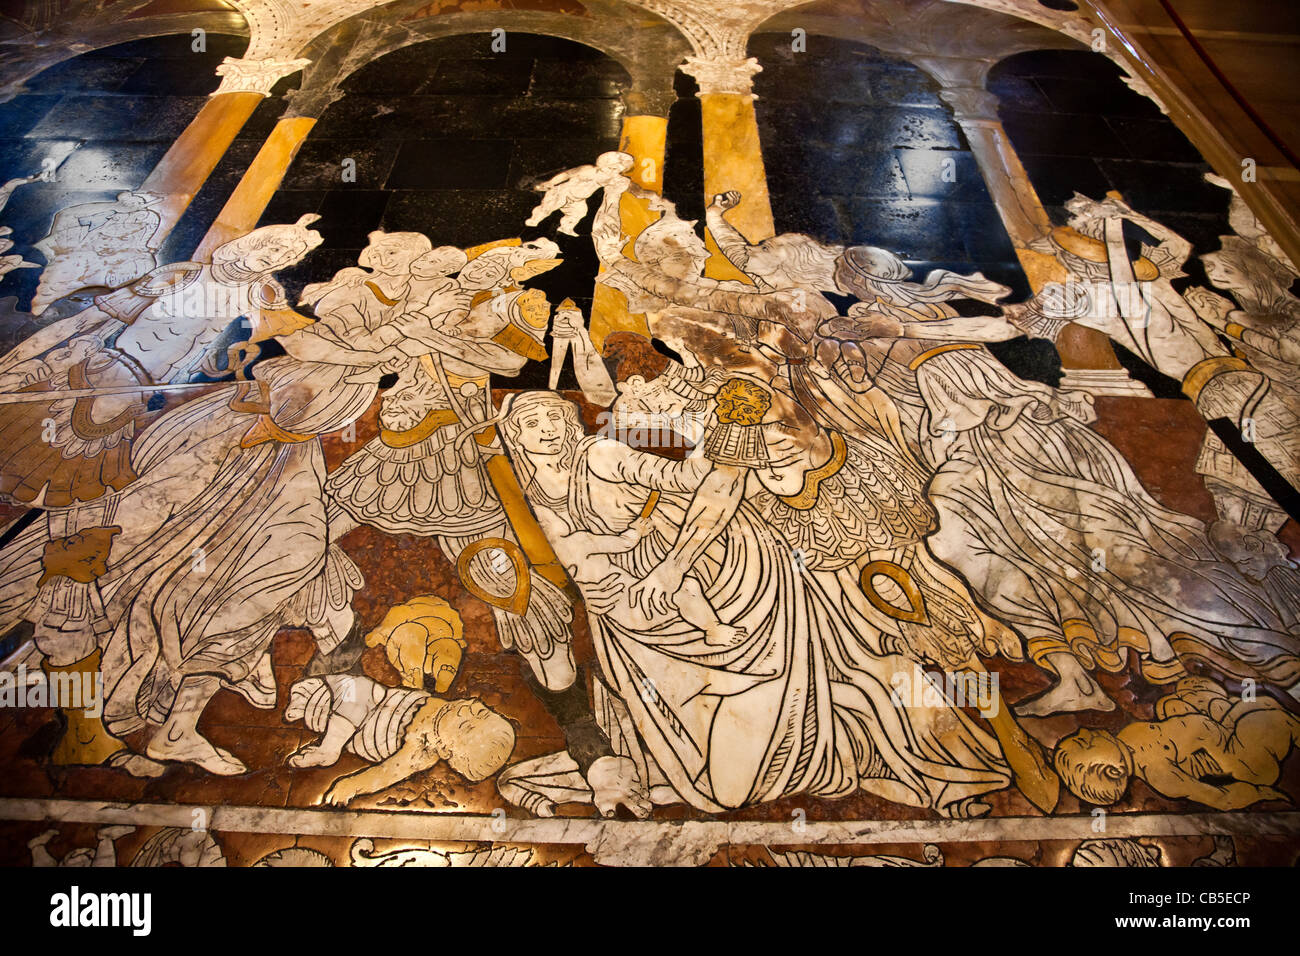 Part of the Slaughter of the Innocents panel (1481) by Matteo di Giovanni in the pavement inside Siena Cathedral Stock Photo